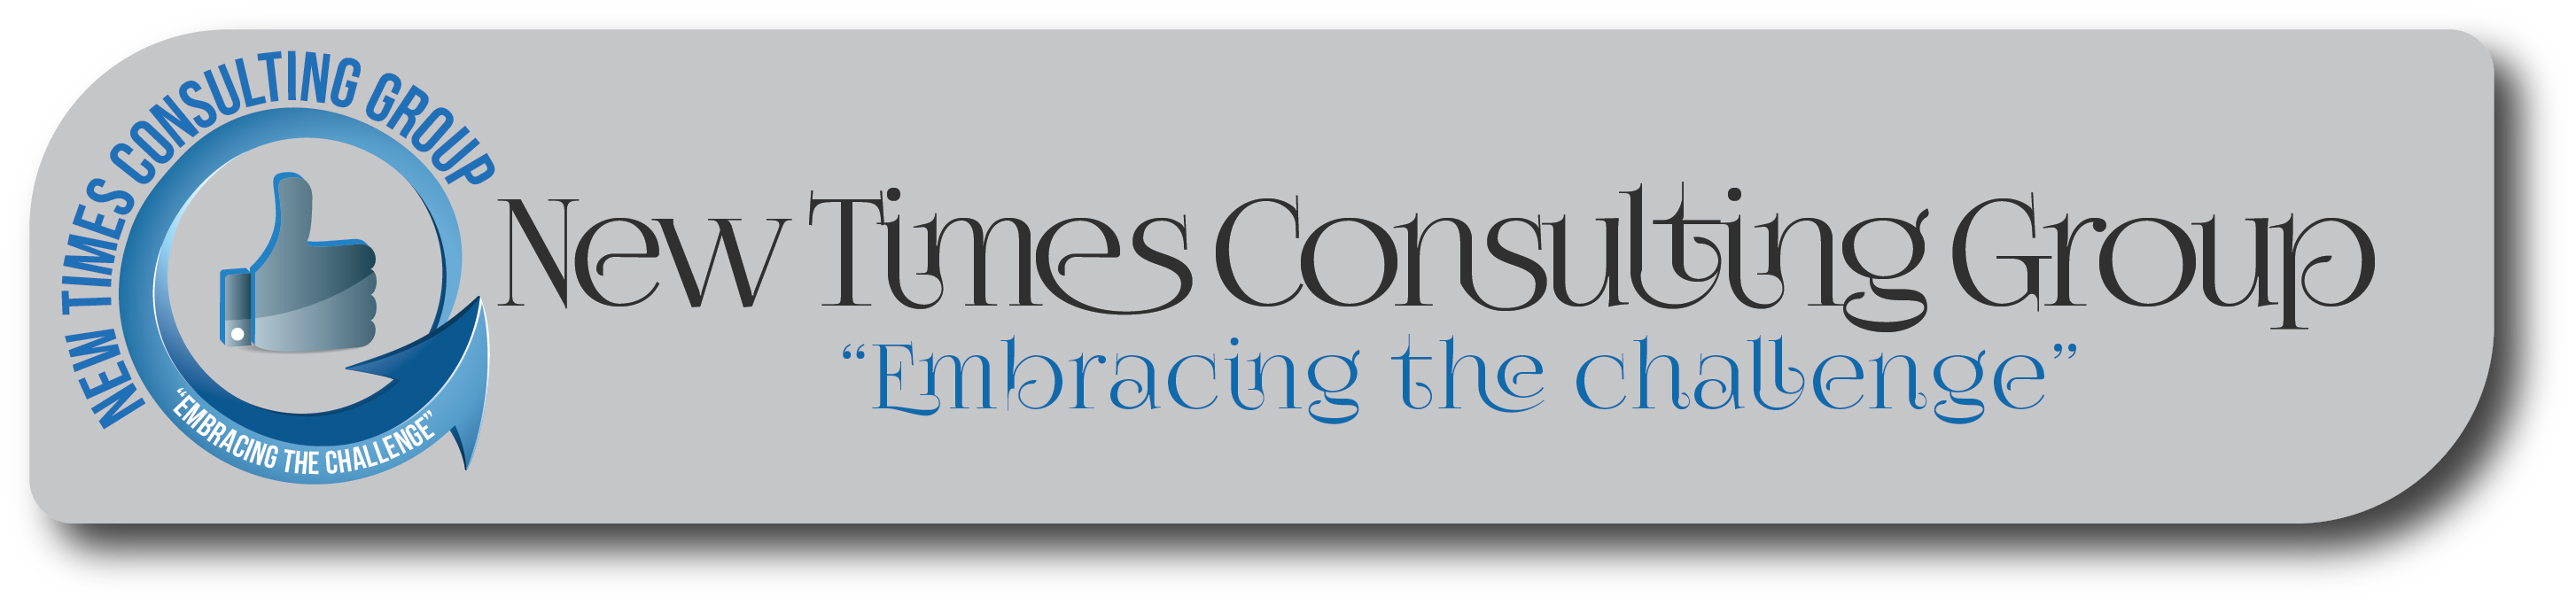 New Times Consulting Group